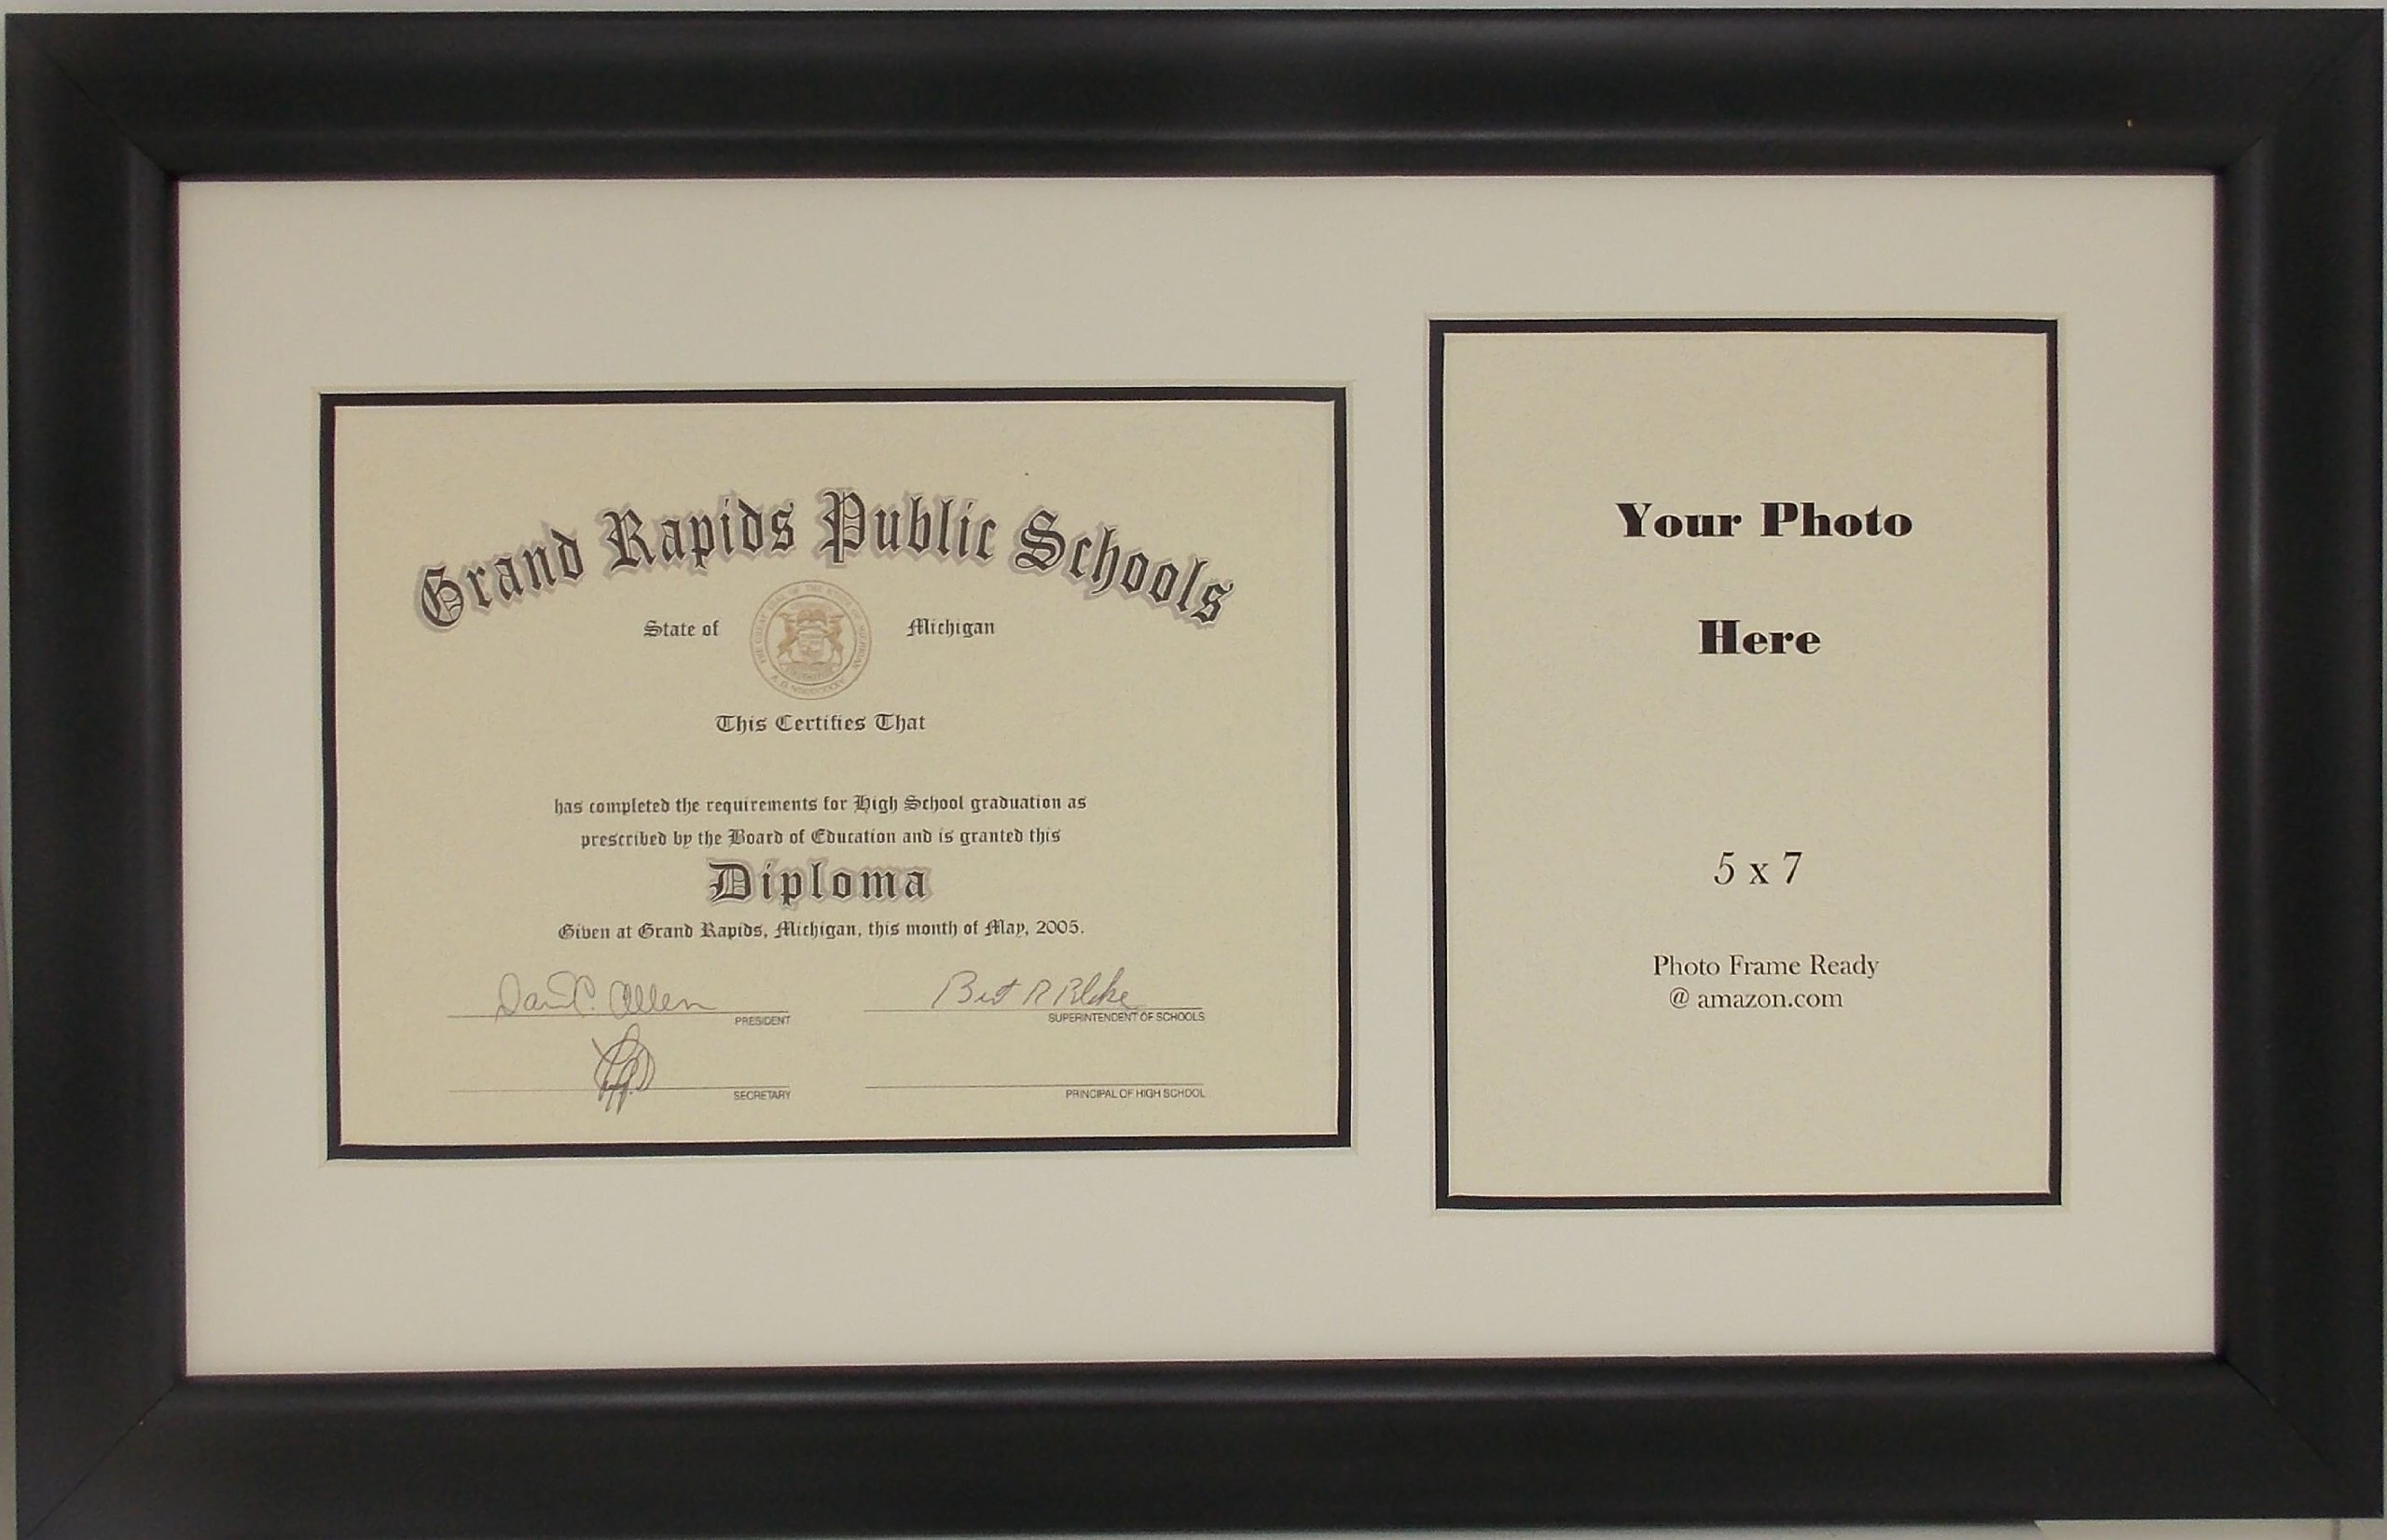 Graduation High School Diploma 6x8 Certificate with 5 X 7 Photo Frame